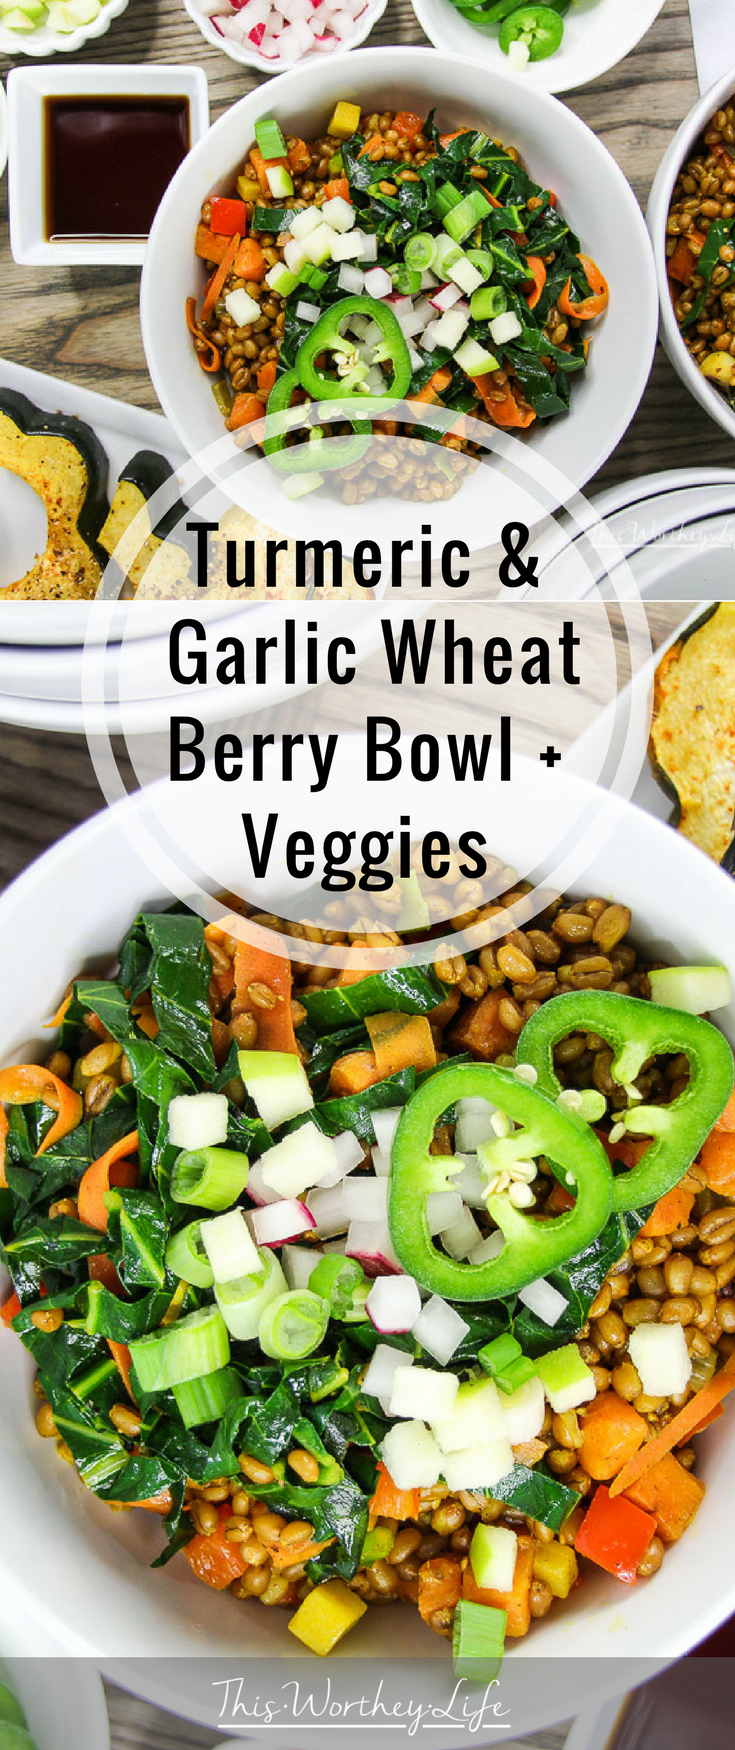 This vegetarian bowl is a healthy, delicious grain recipe that is also hearty and will have you coming back for seconds. We made the #wheatberry in the Instant Pot and it turned out amazing. Our Turmeric & Garlic Wheat Berry Bowl + Veggies #recipe is one to add to your list of #healthy recipes to try this year! With the convenience of using an #instantpot for the wheatberry- this recipe is rated #easy!